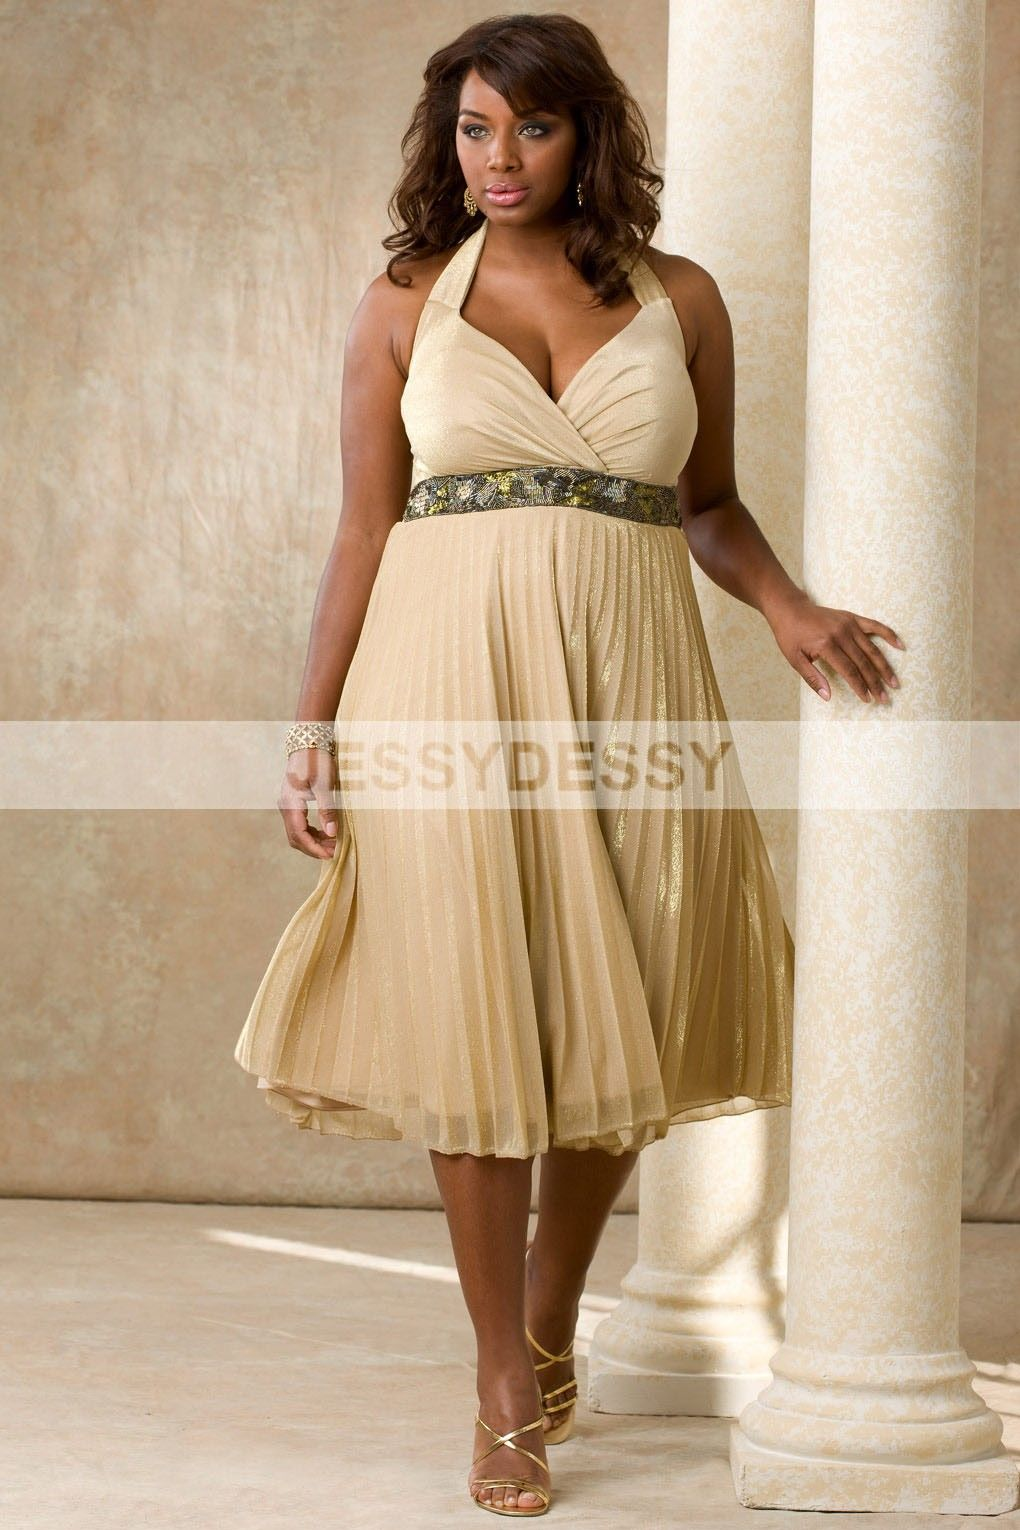 For kristi bridesmaids dress plus size halter tea length plus size bridesmaid dresses chiffon ombrellifo Choice Image